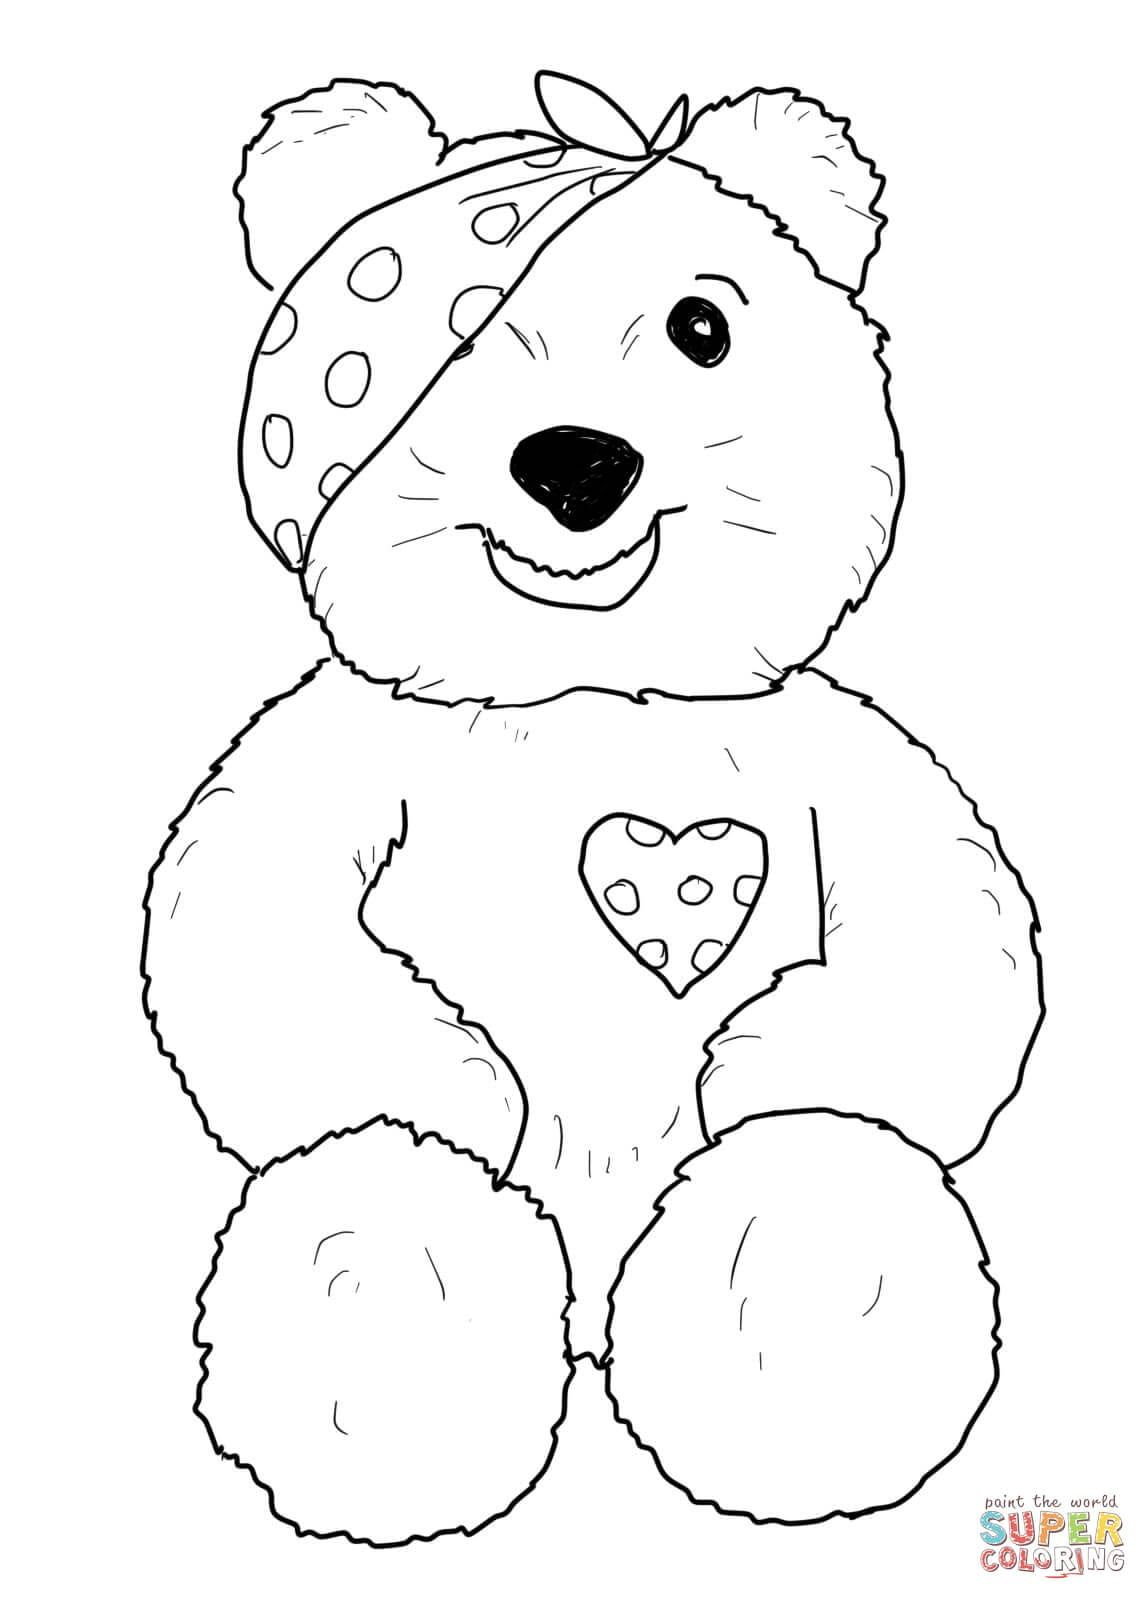 pudsey bear template printables 10 best pudsey colouring sheets images on pinterest bear template pudsey printables bear